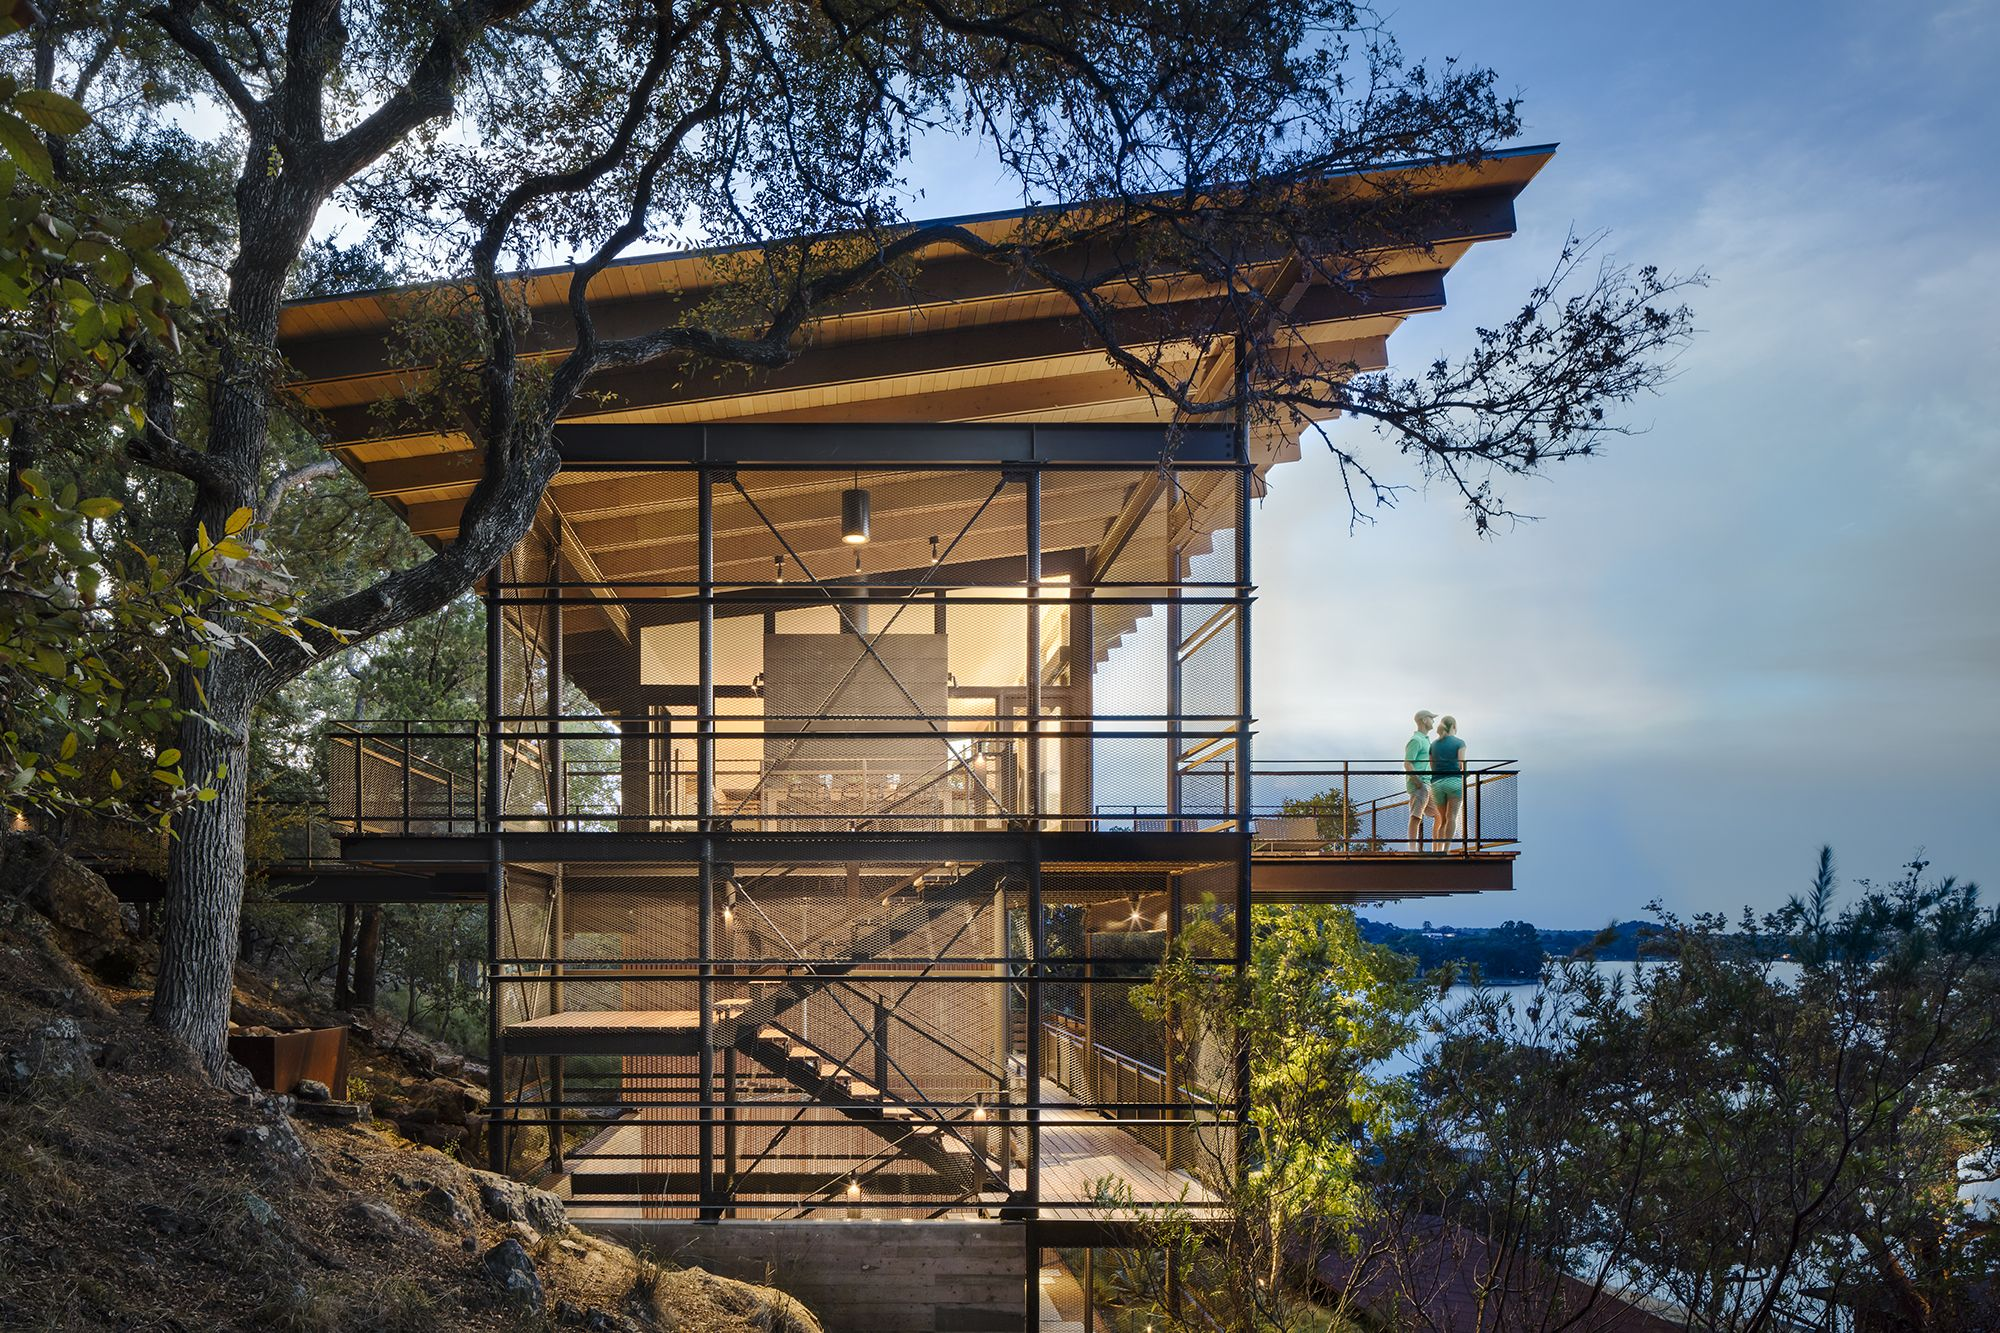 Architects Affordable Housin